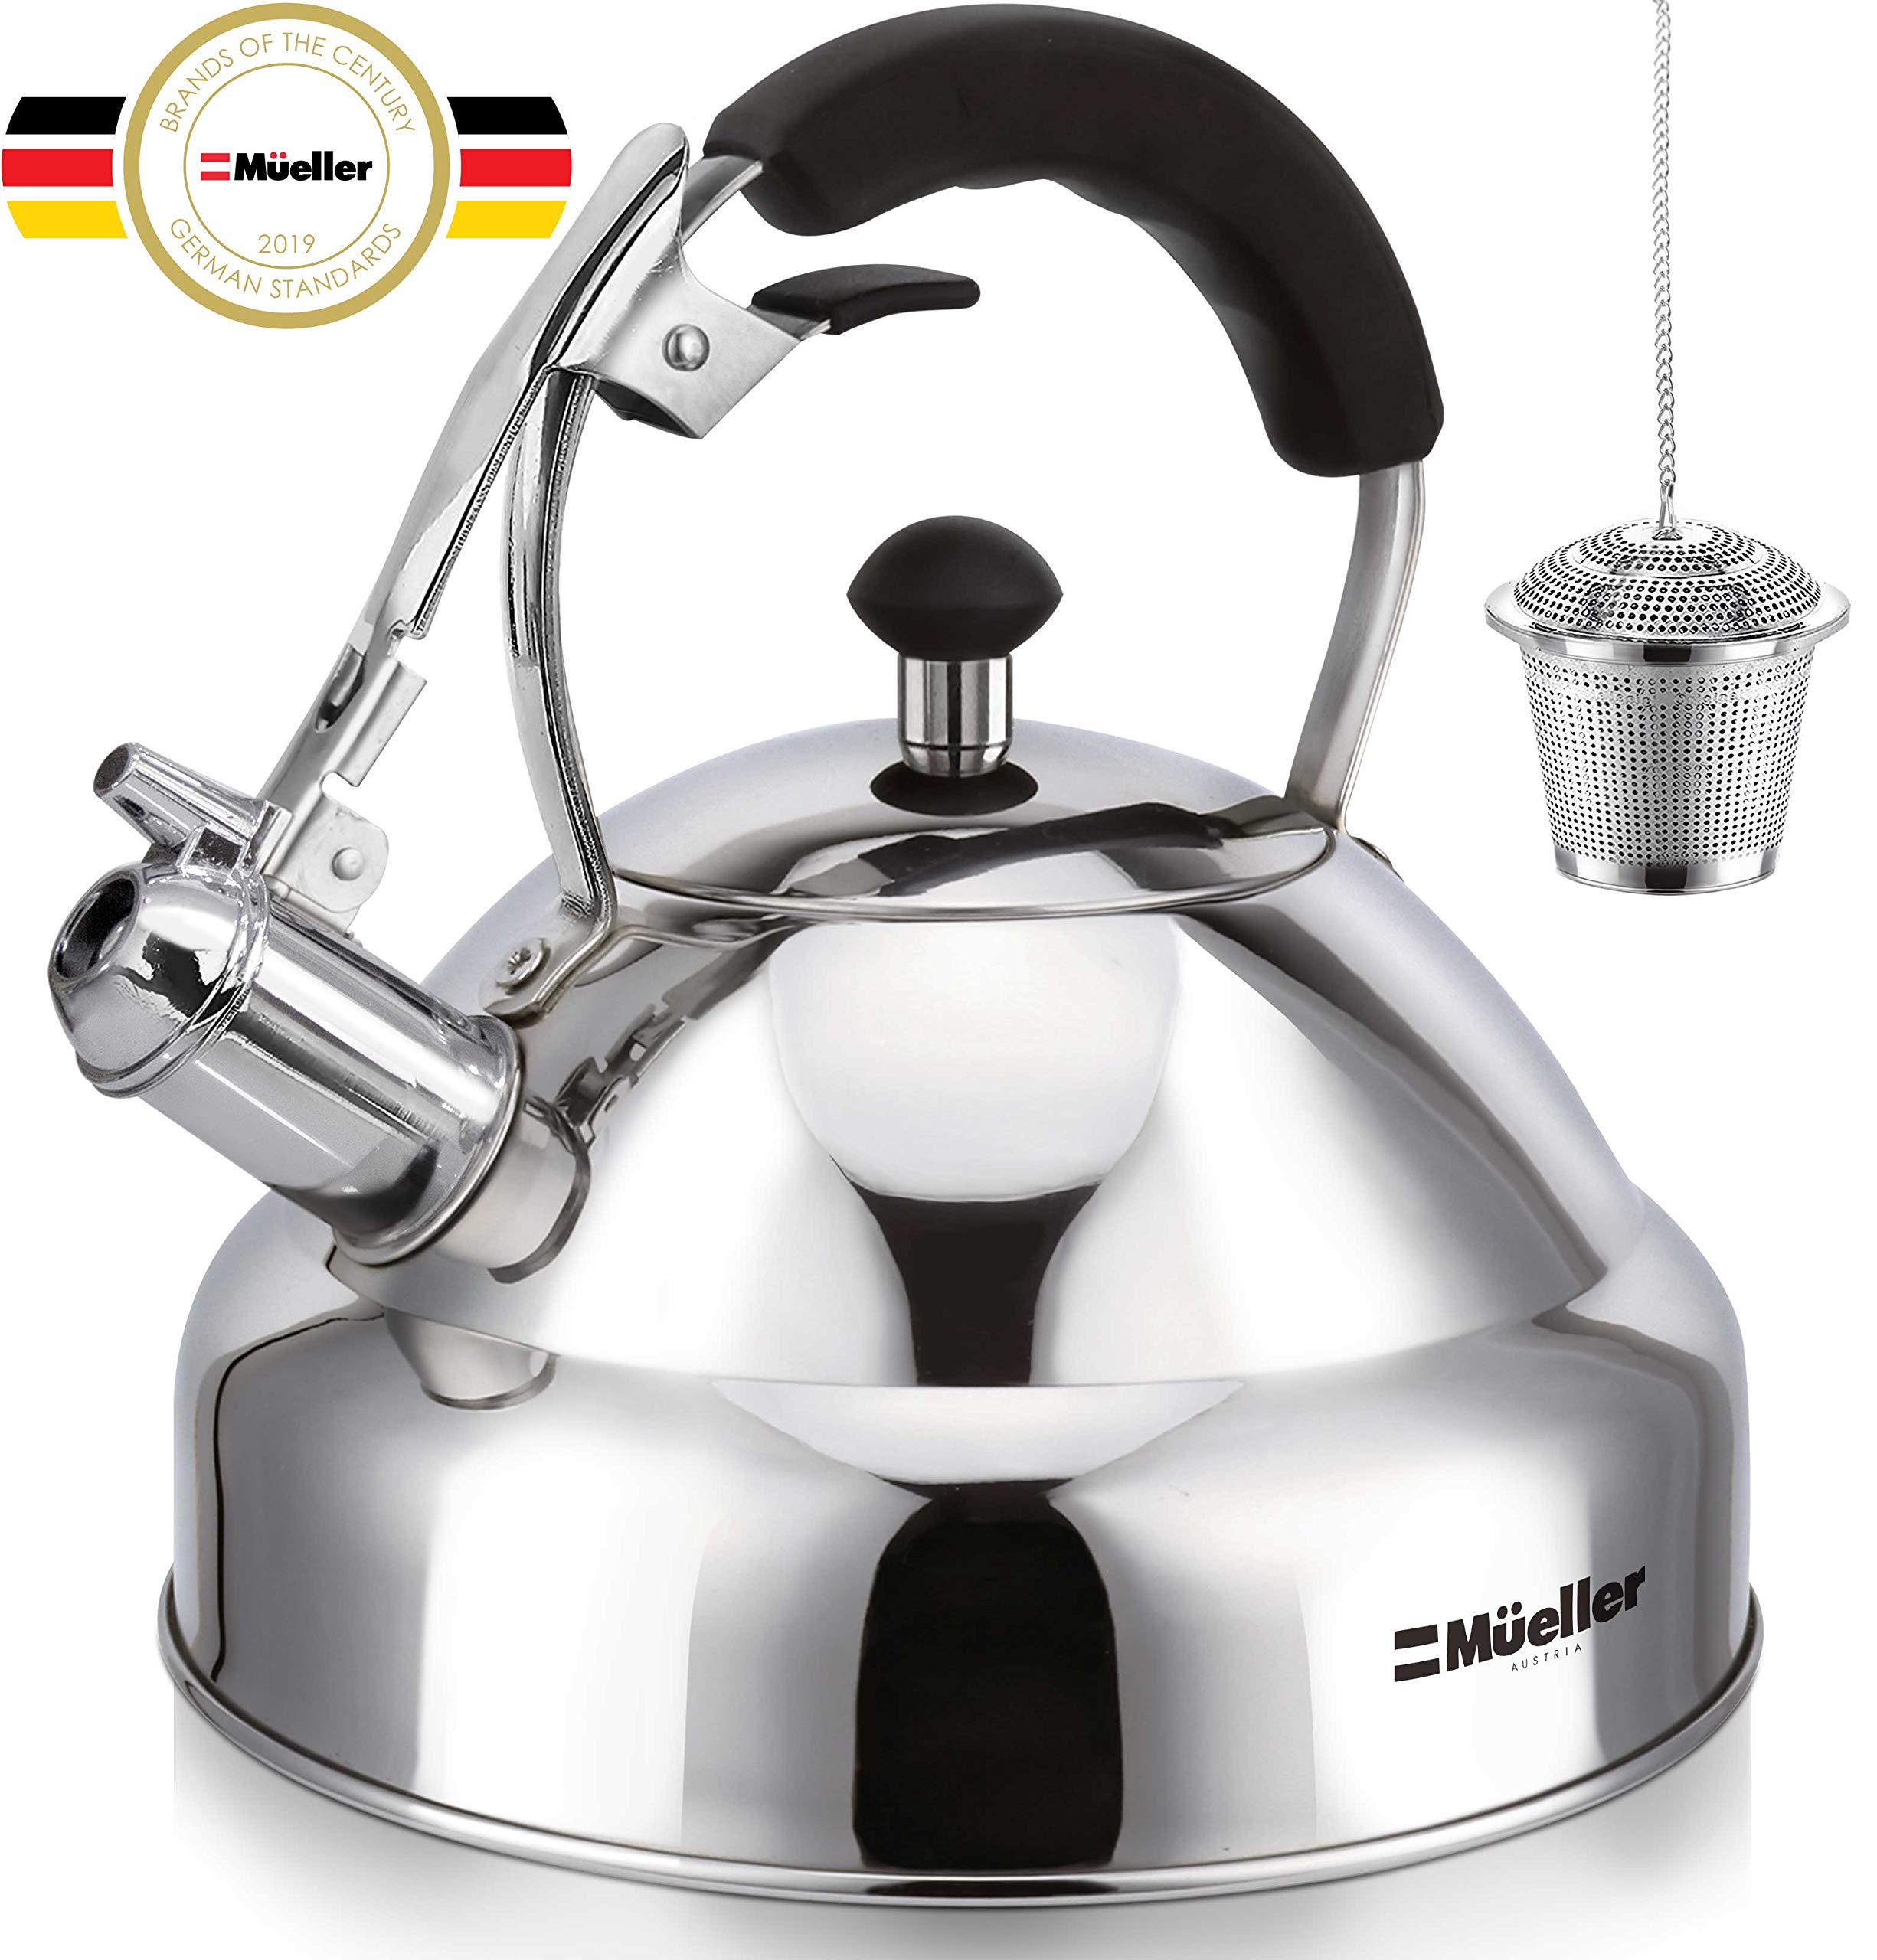 Stove Top Whistling Tea Kettle - Only Culinary Grade Stainless Steel Teapot with Cool Touch Ergonomic Handle and Straight Pour Spout - Tea Maker Infuser Strainer Included by Mueller Austria (Image #1)